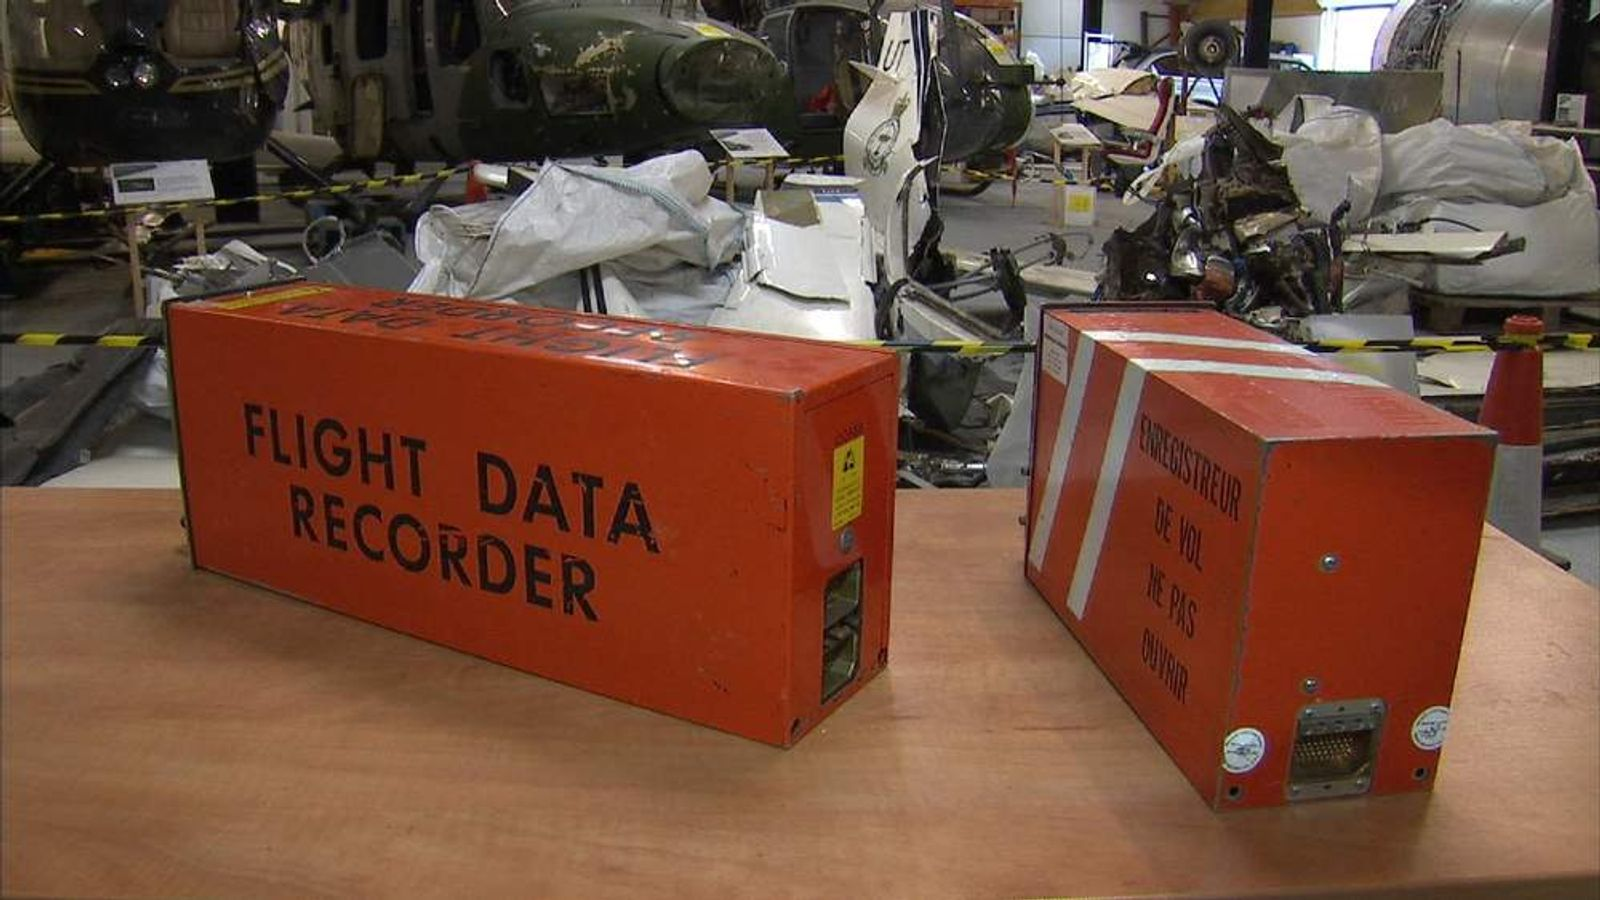 A plane's flight data recorder